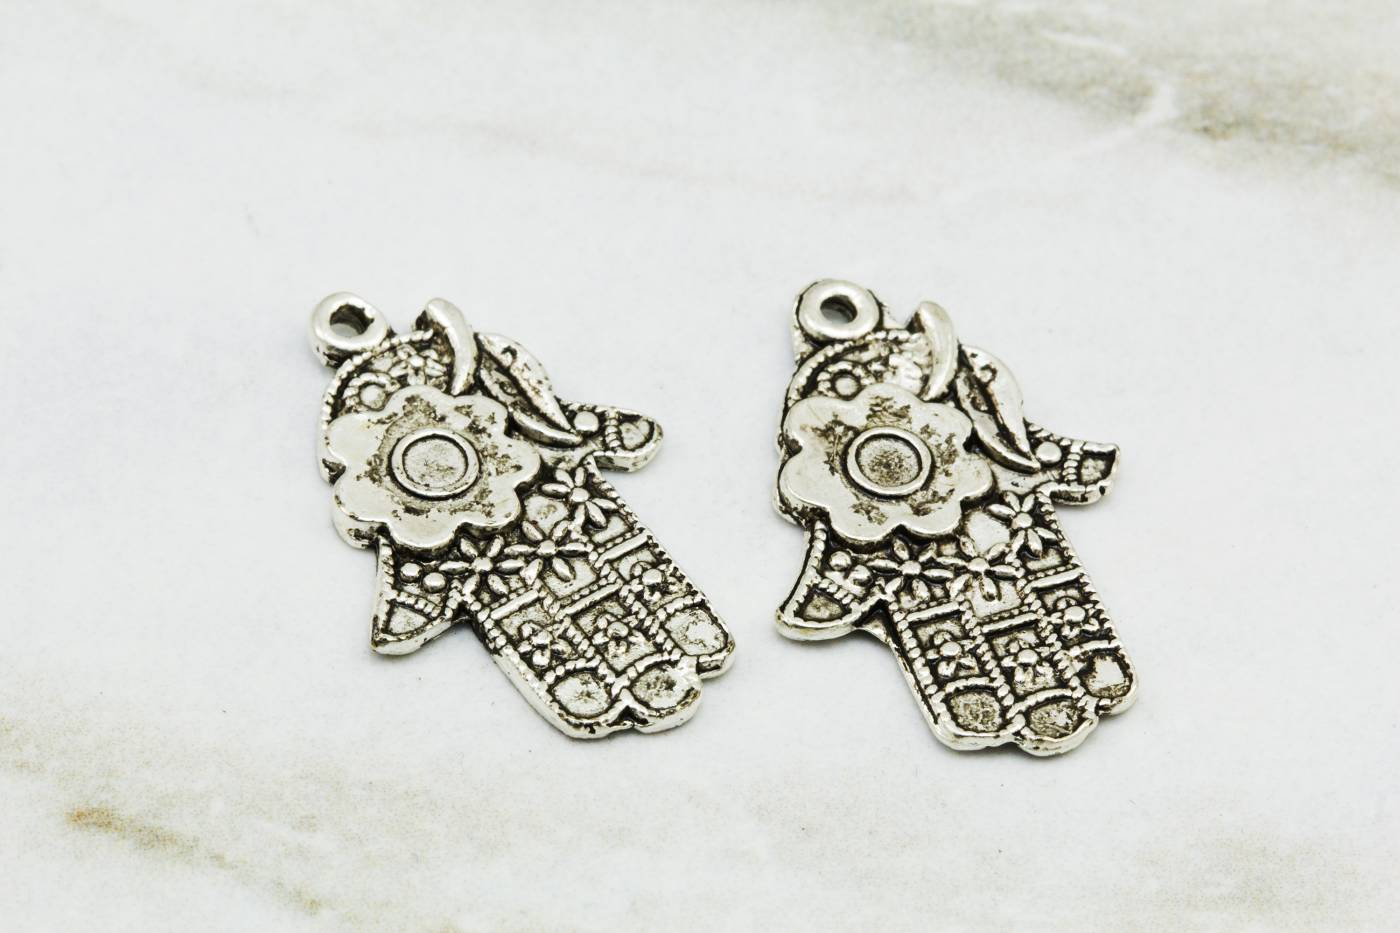 hamsa-pendant-jewelry-findings.jpg